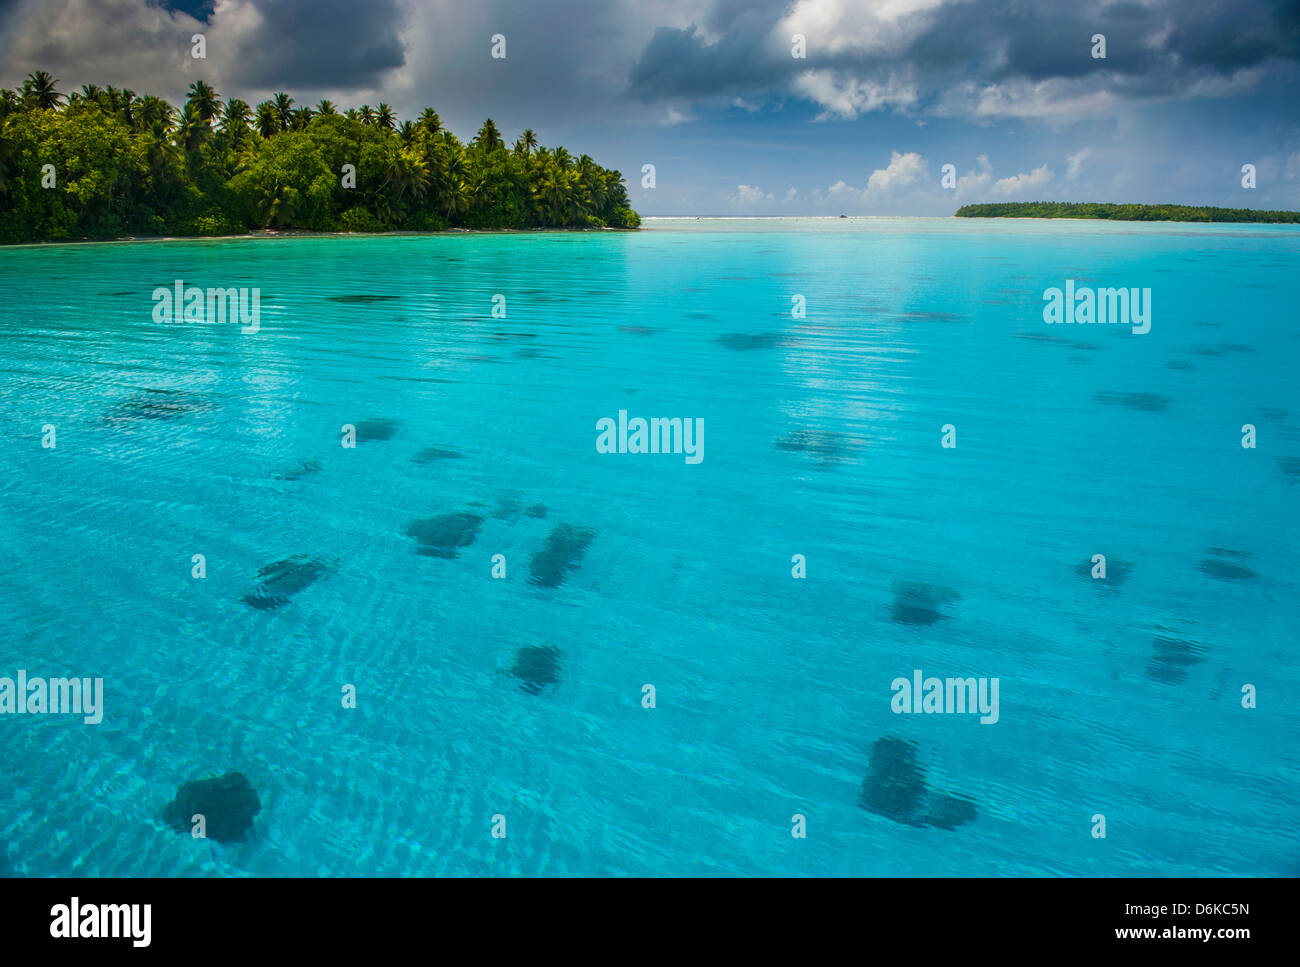 Beautiful turquoise water in the Ant Atoll, Pohnpei, Micronesia, Pacific - Stock Image